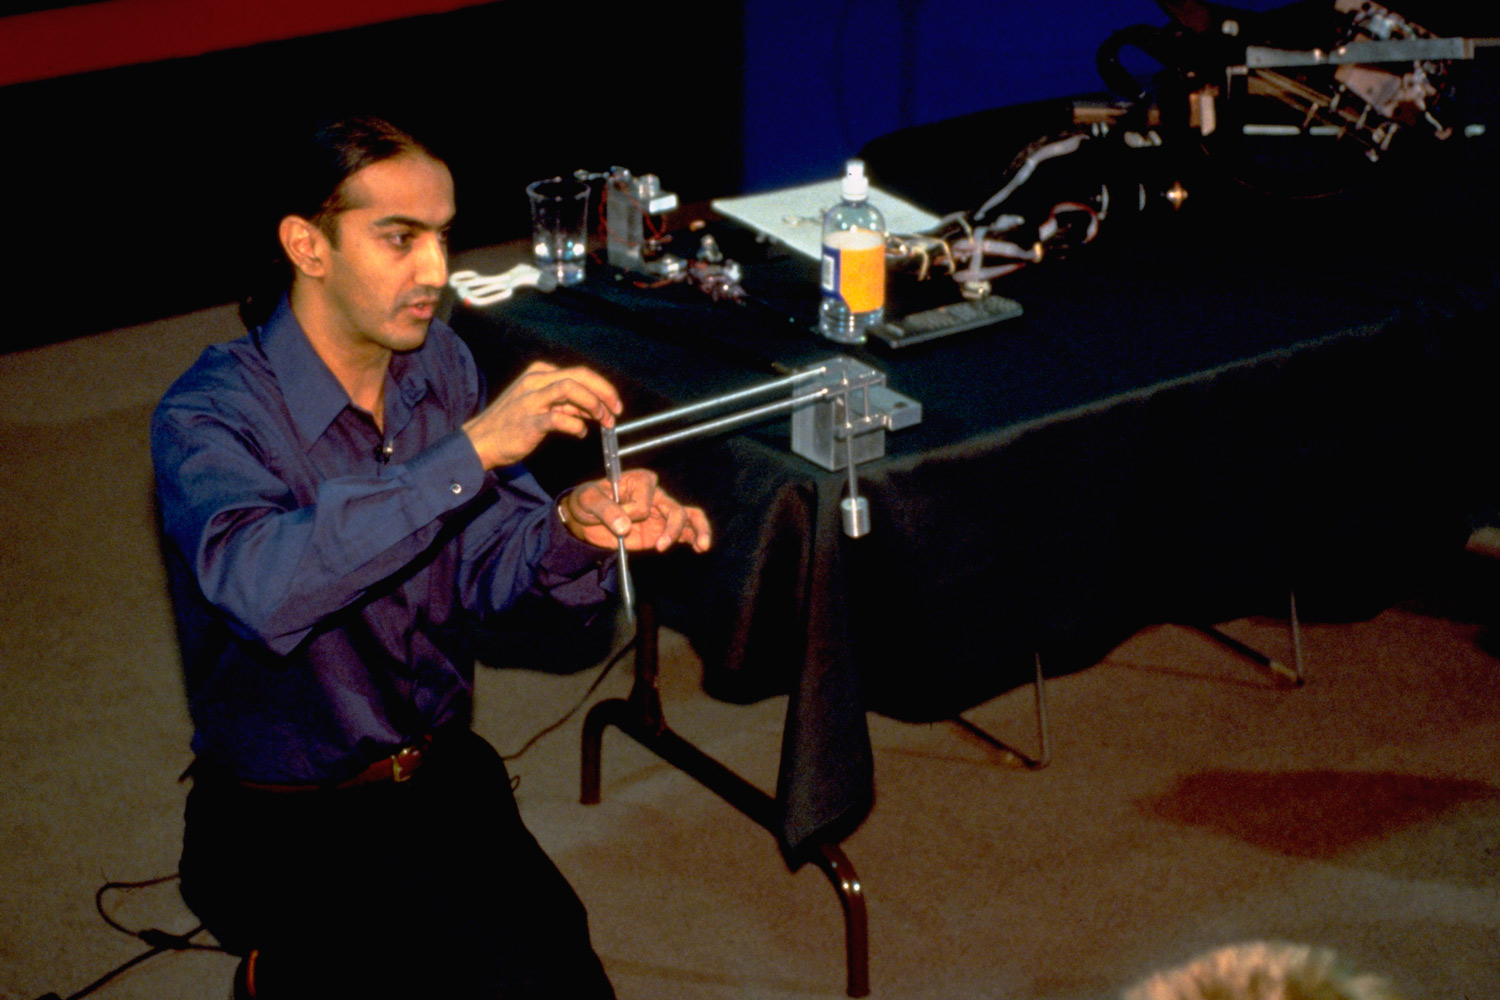 Image of Akhil Madhani demonstrating how robot arms work